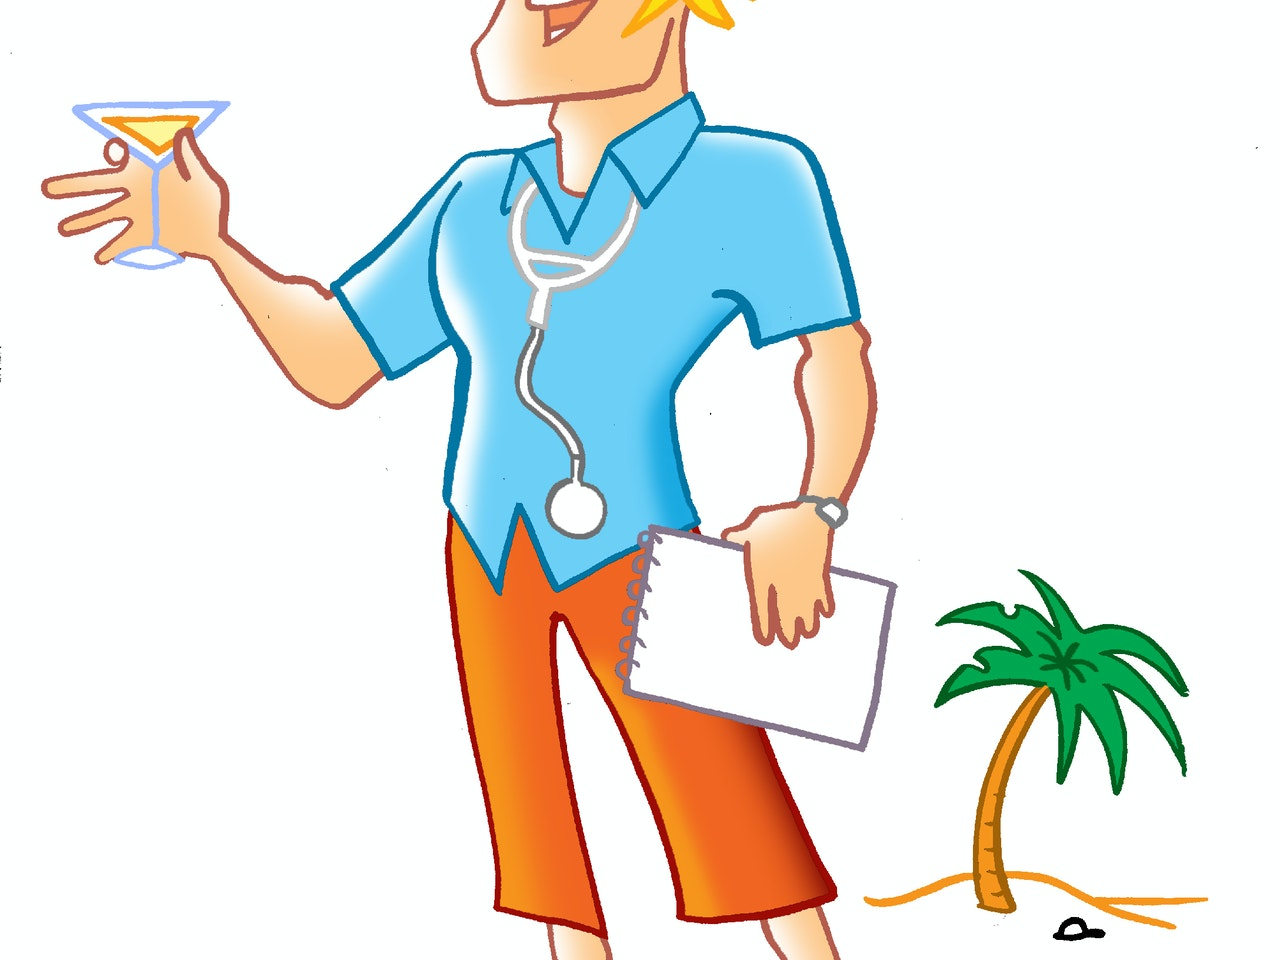 martini doctor desert island beach life palm tree retro illustration animation  humorous comical colourful graphic cartoon manga anime publishing